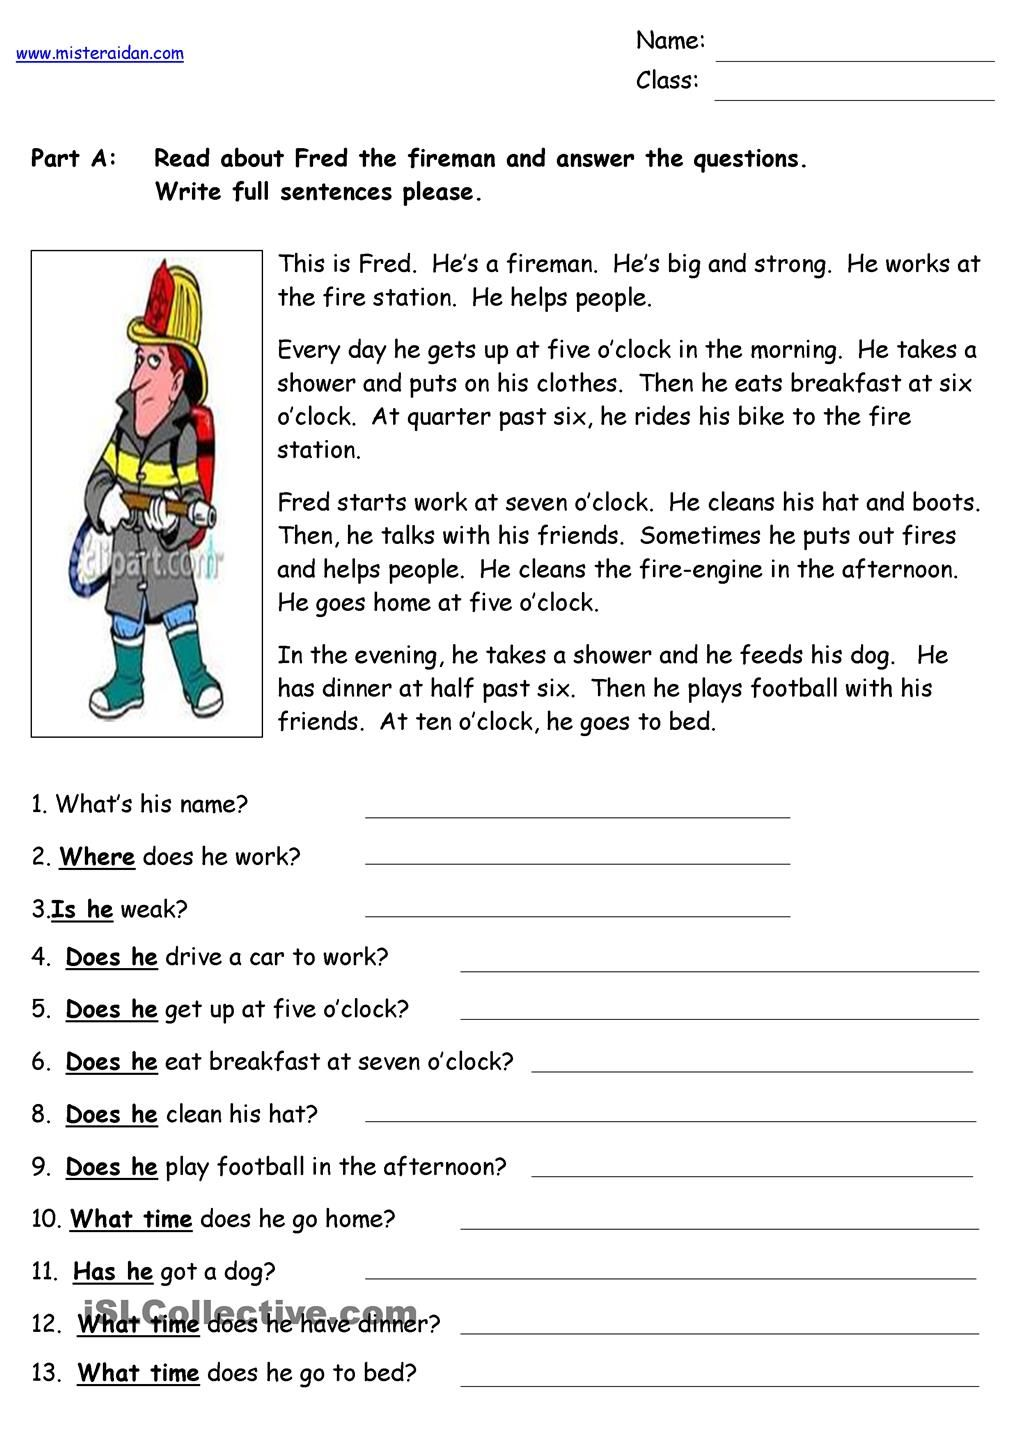 Fred the Fireman - Reading Comprehension | School | Pinterest ...